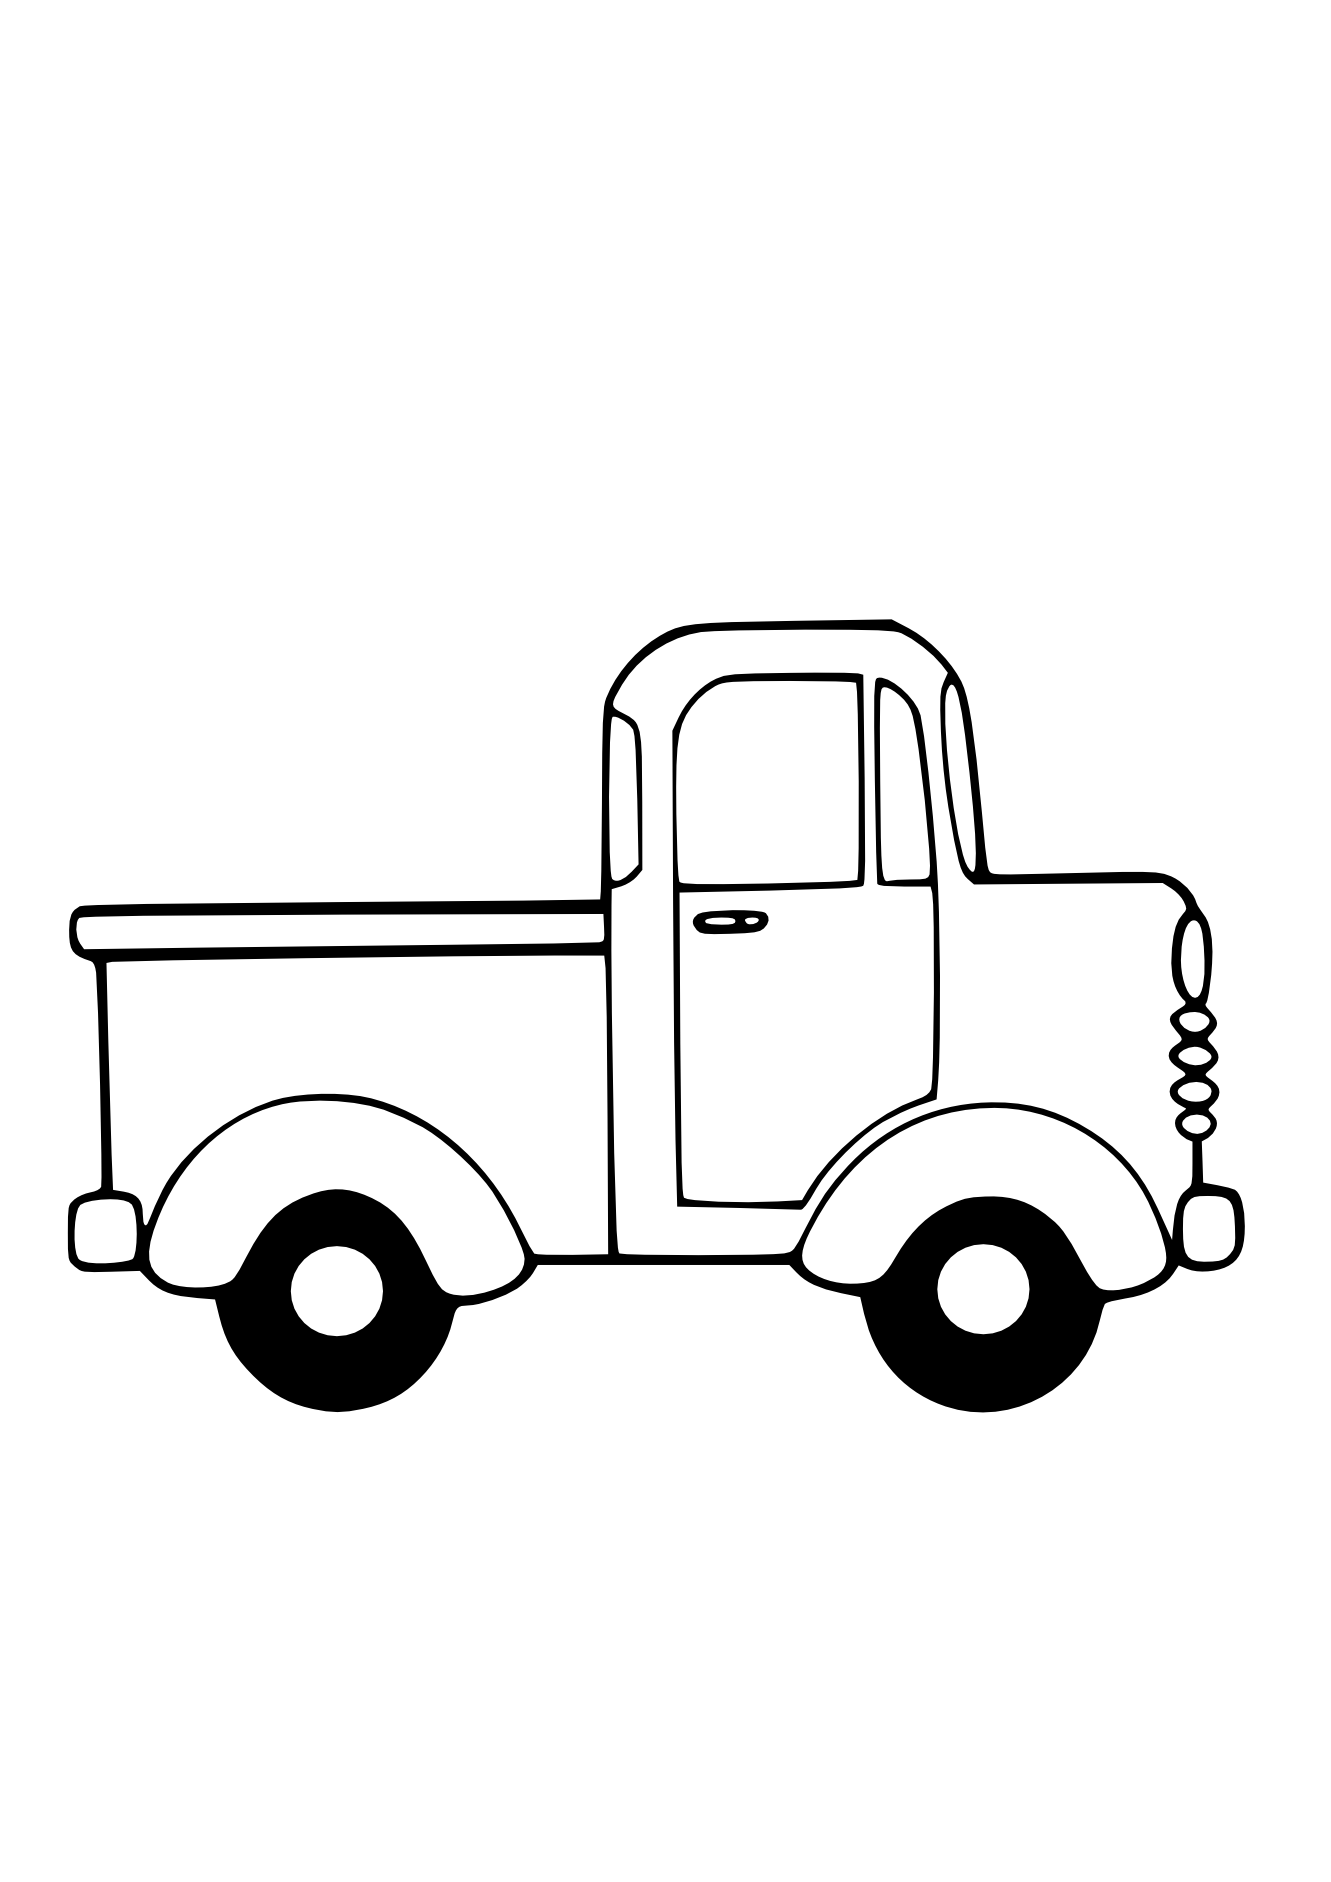 Flatbed train car clipart transparent library Truck Black White Line Art Christmas Xmas Toy Scalable Vector ... transparent library